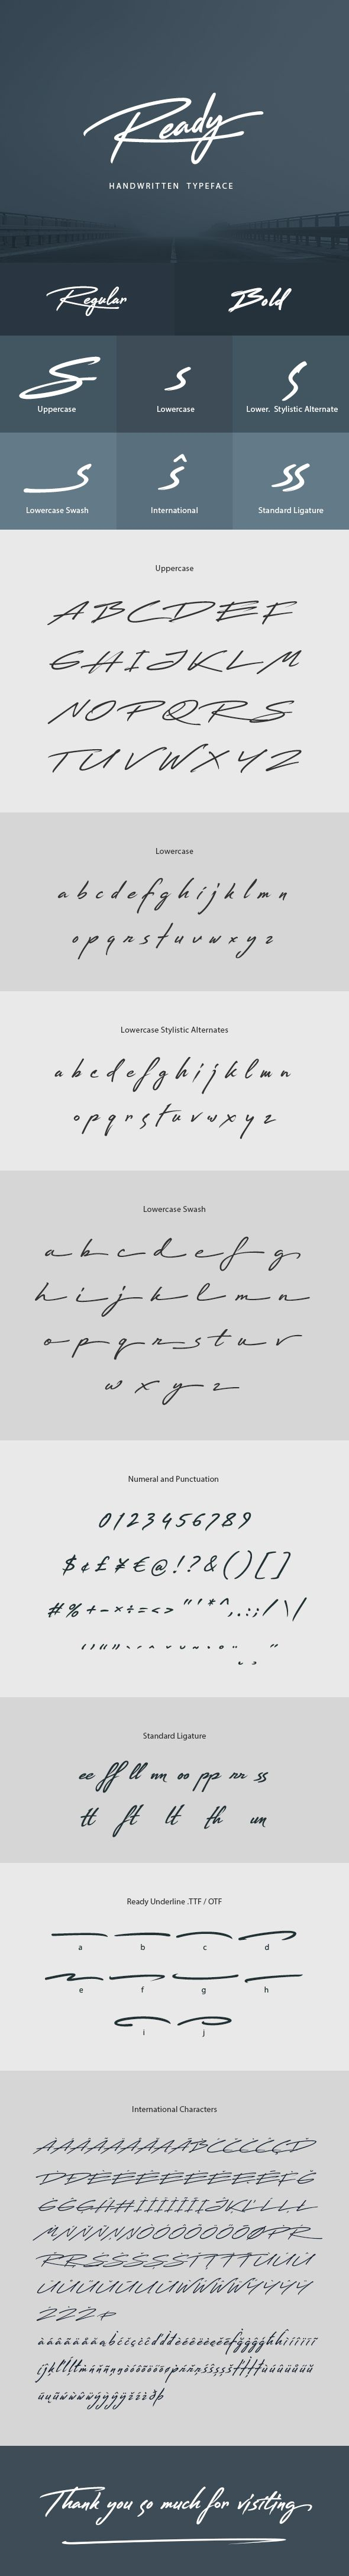 Ready Handwritten Font 235 best Design u0026